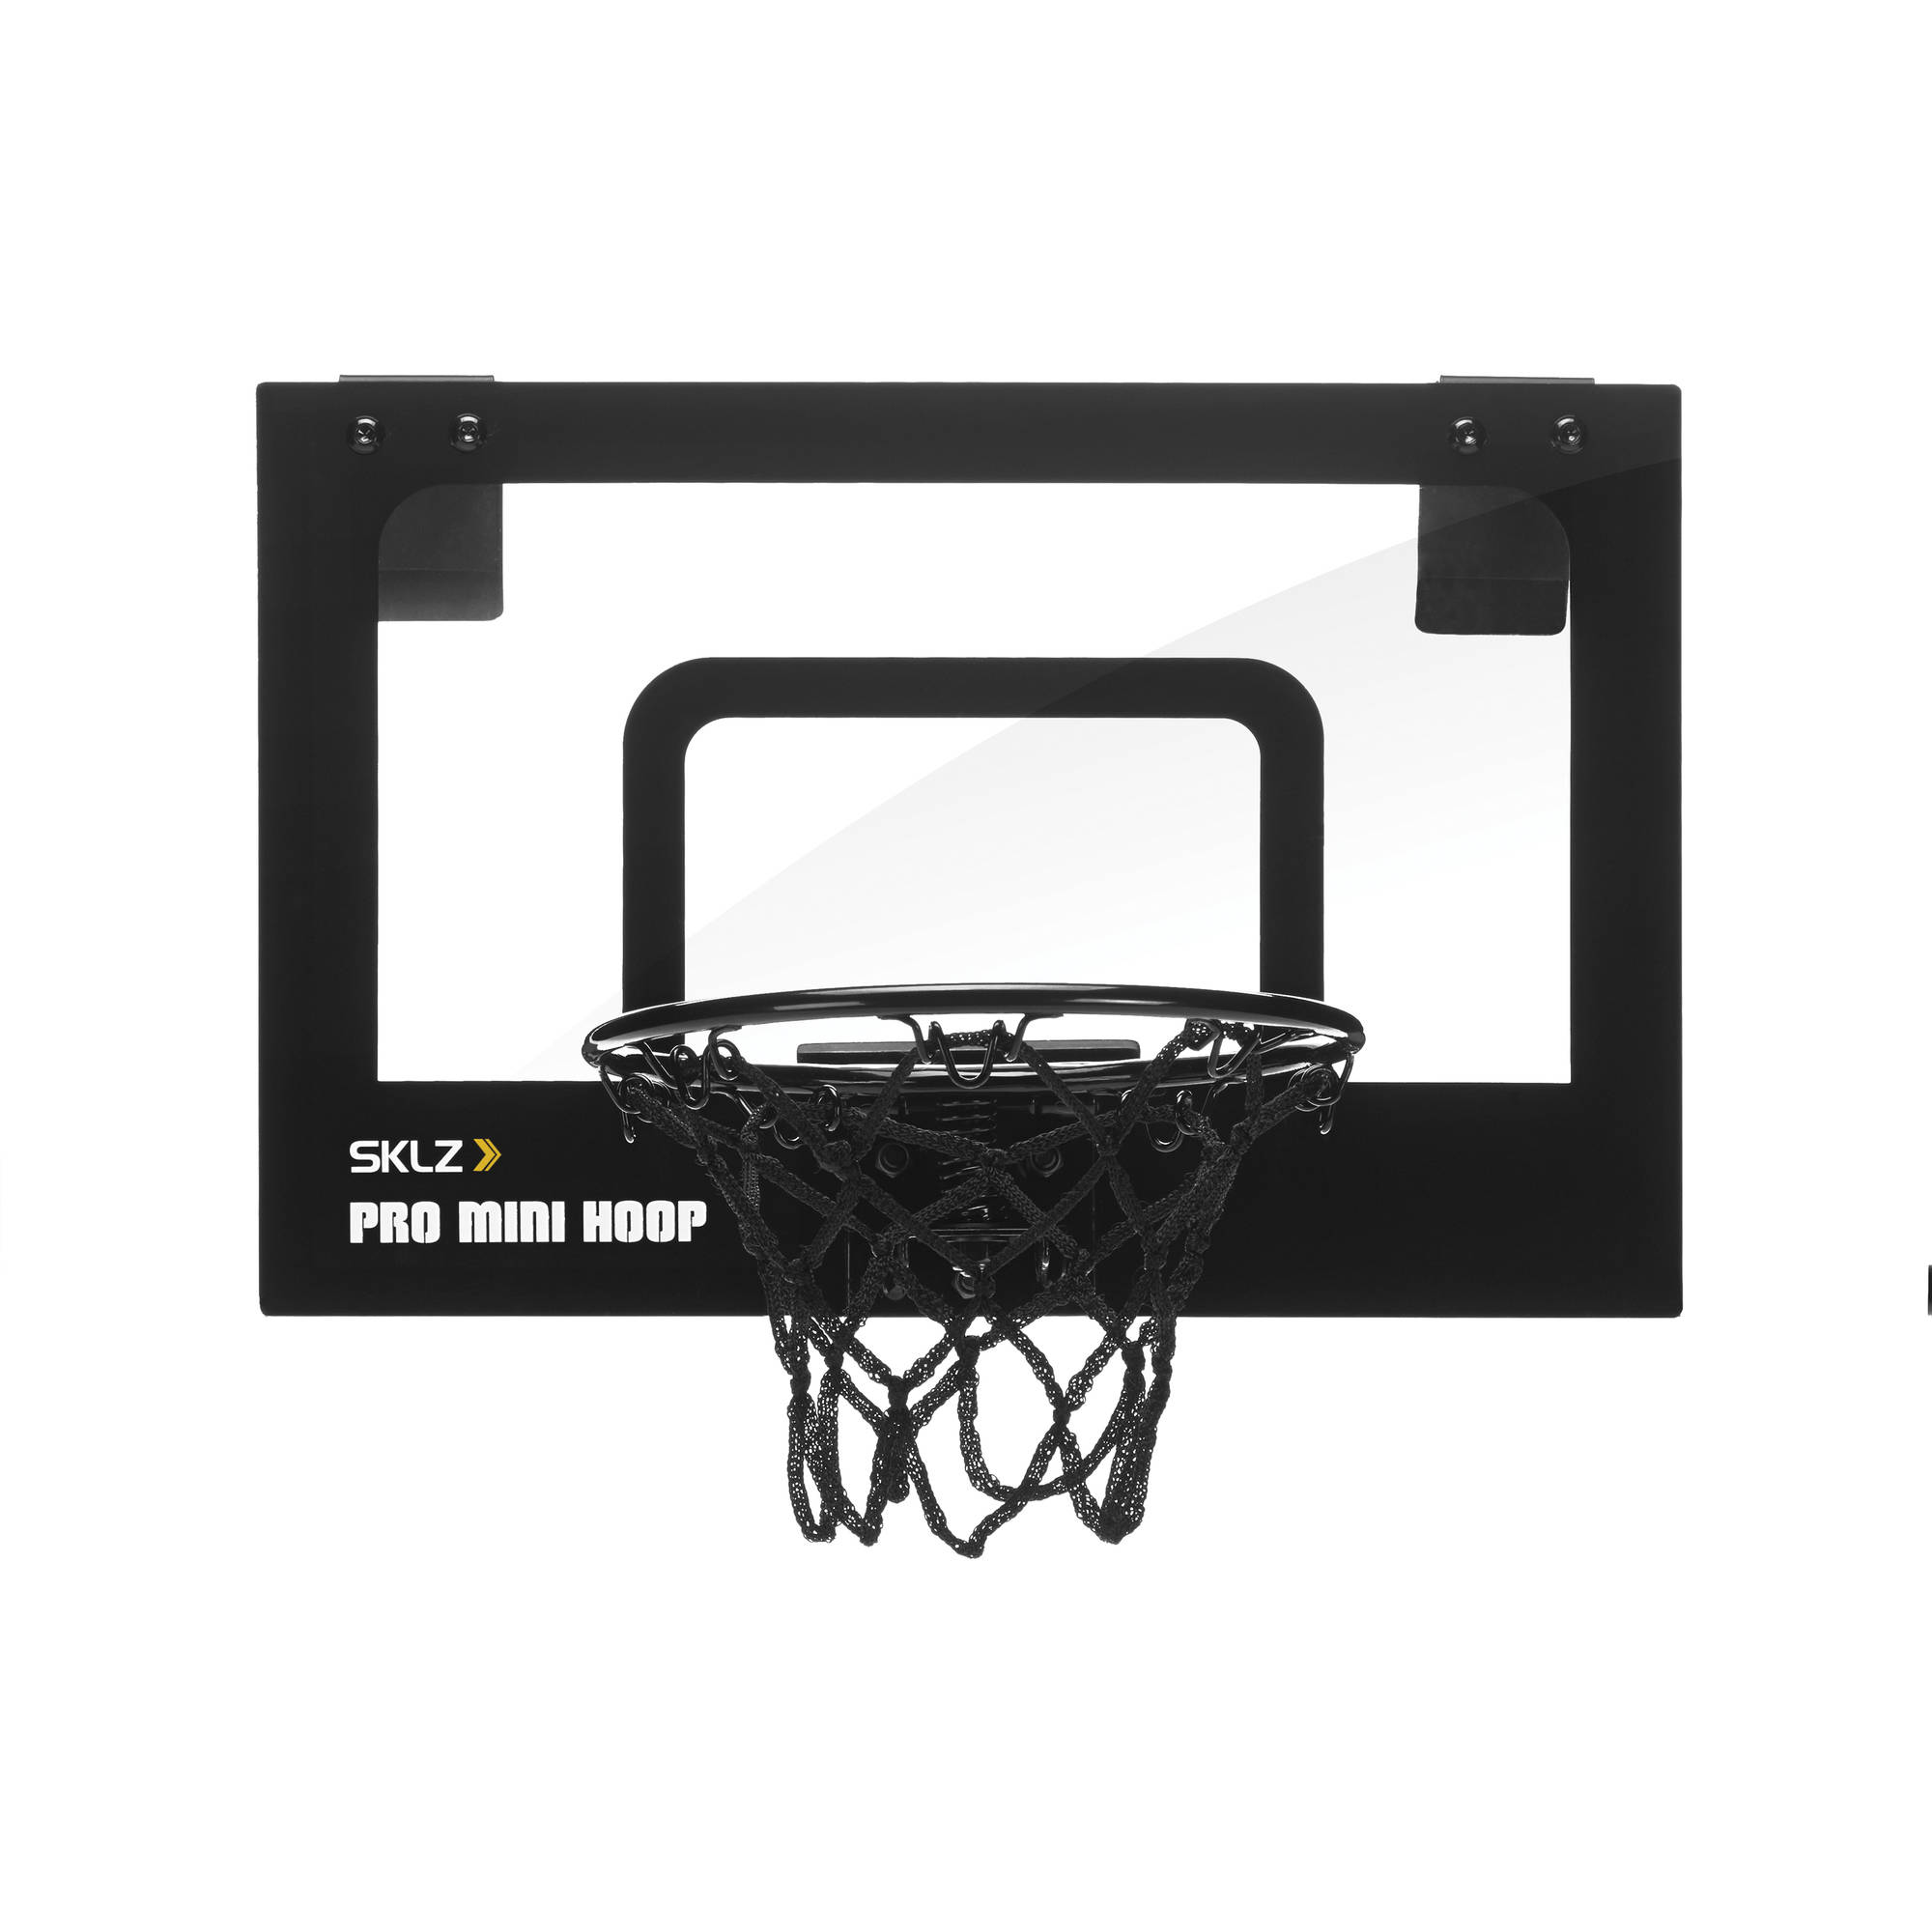 SKLZ Pro Quick-Assembly Easy-Mounting Mini Hoop Micro by Pro Performance Sports